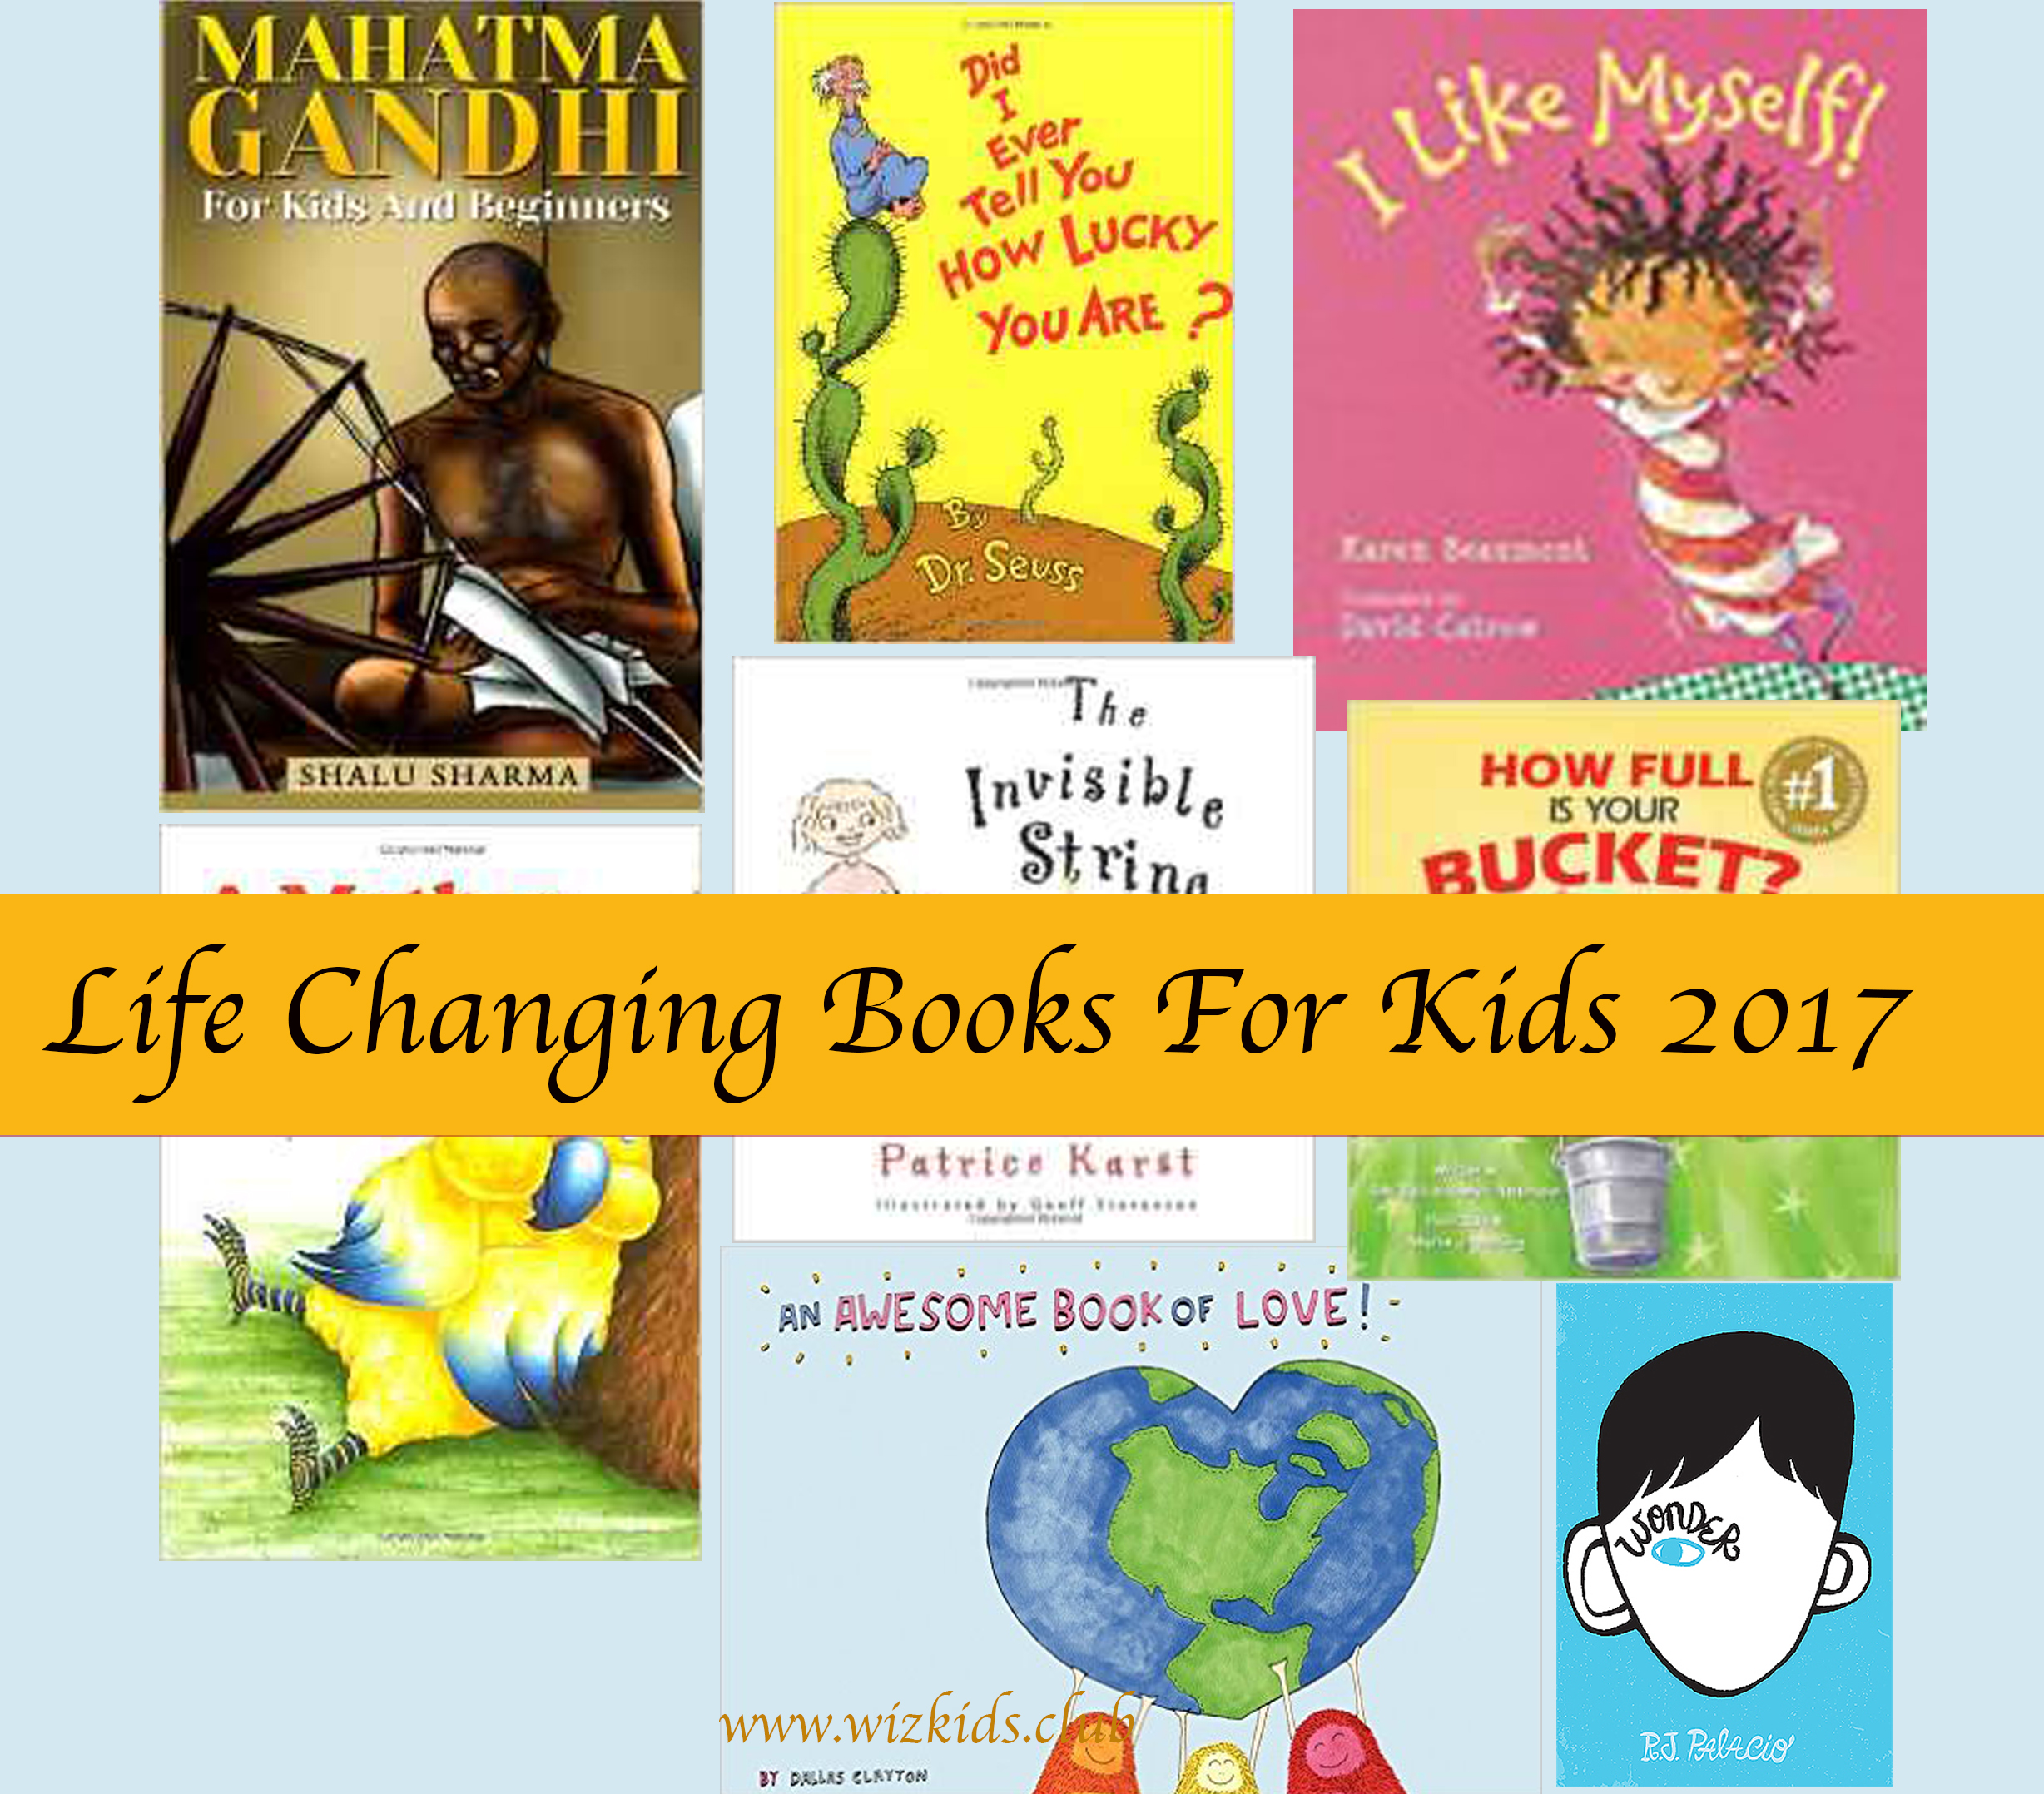 Life Changing Books For Kids 2017